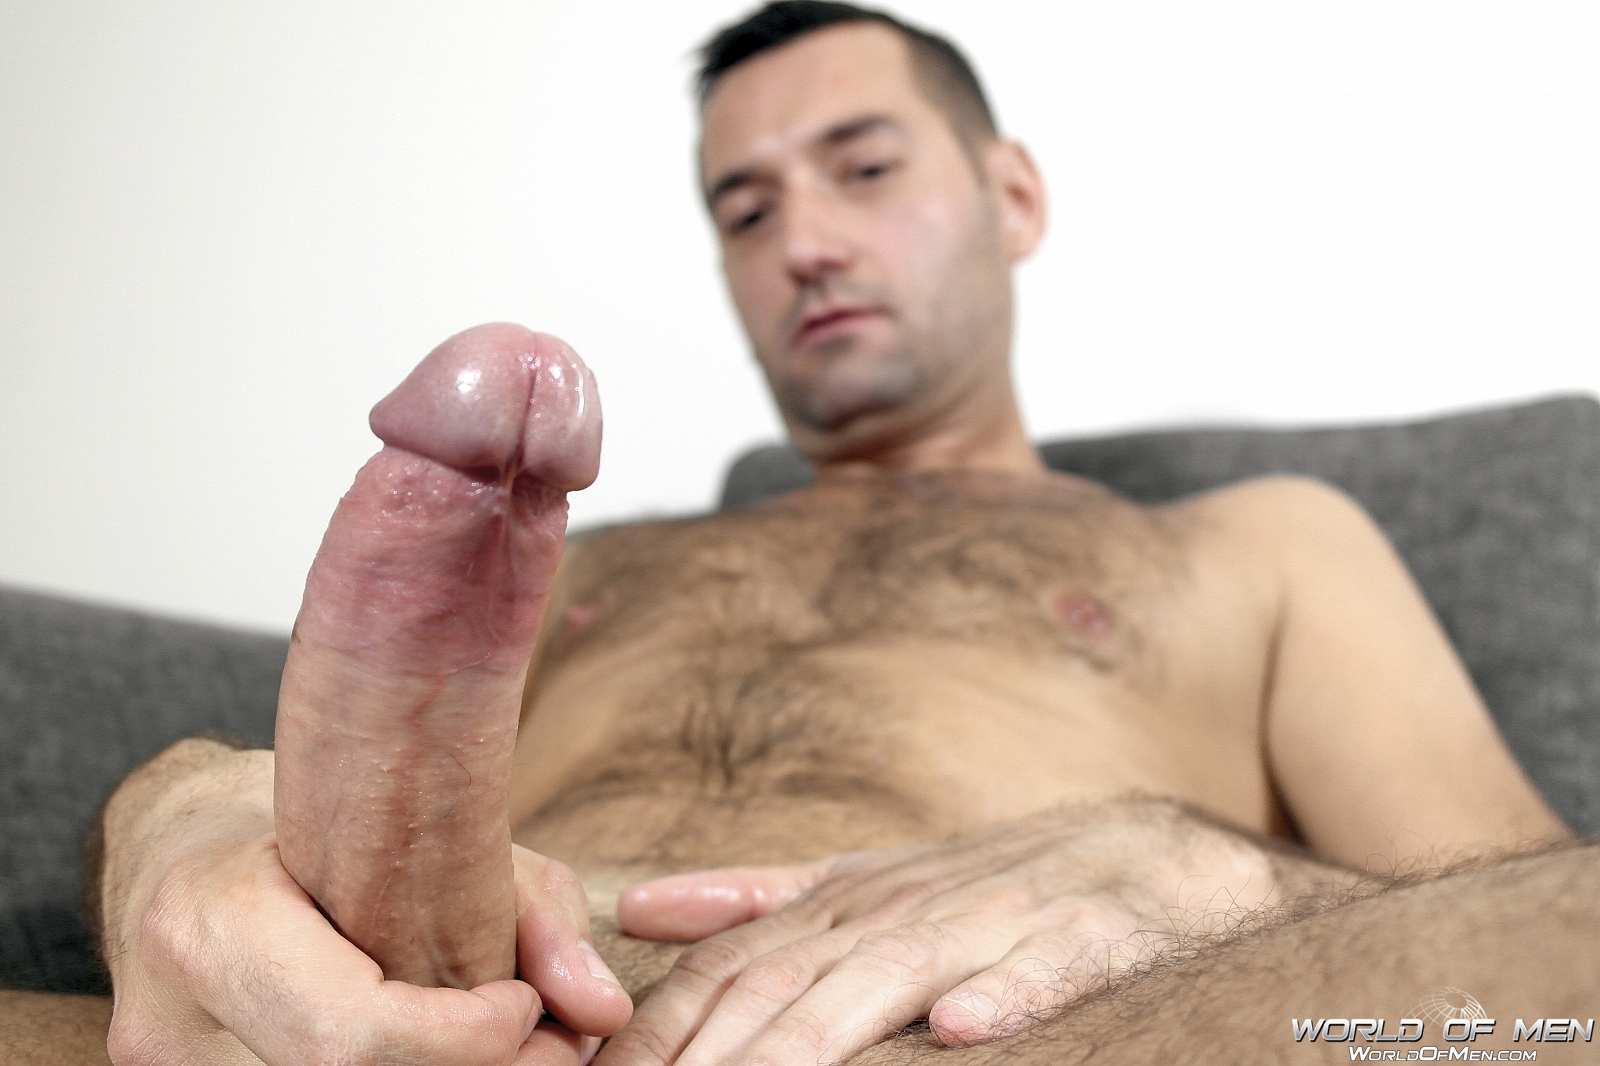 World Of Men Chris ADam Big Uncut Cock Jerk Off Masturbation Amateur Gay Porn 15 Hairy Sexy Stud Fingers His Ass And Plays With His Huge Uncut Cock